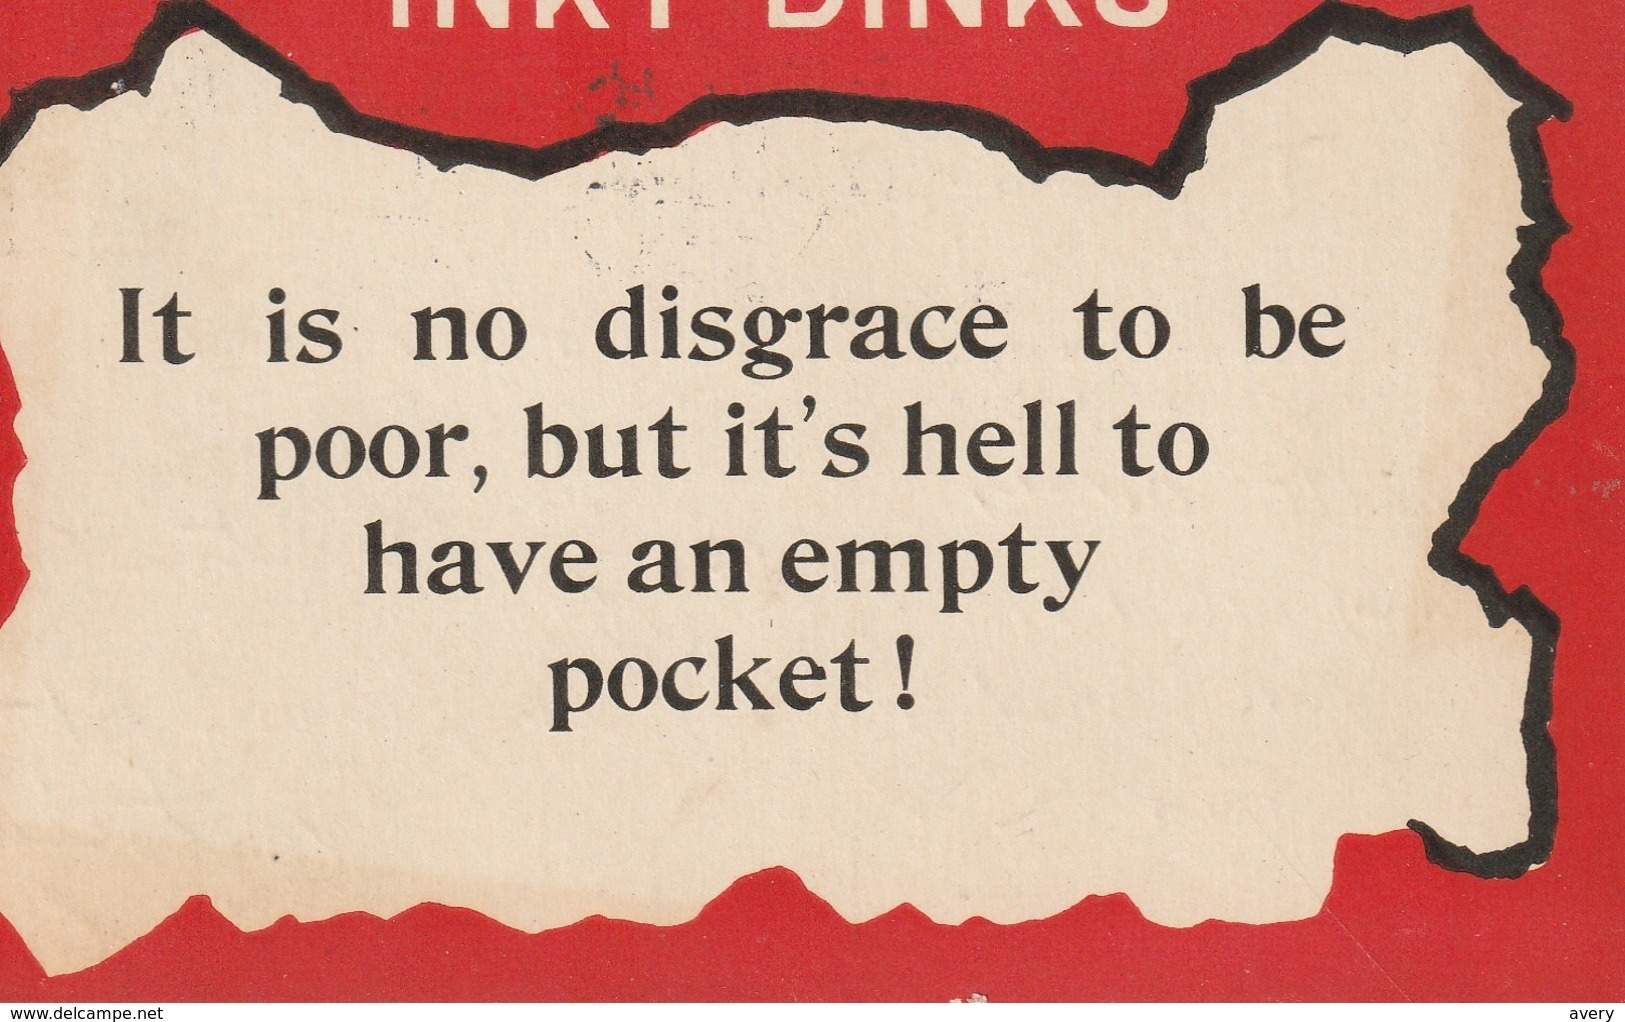 Inky Dinks It Is No Disgrace To Be Poor, But It's Hell To Have An Empty Pocket! - Humour